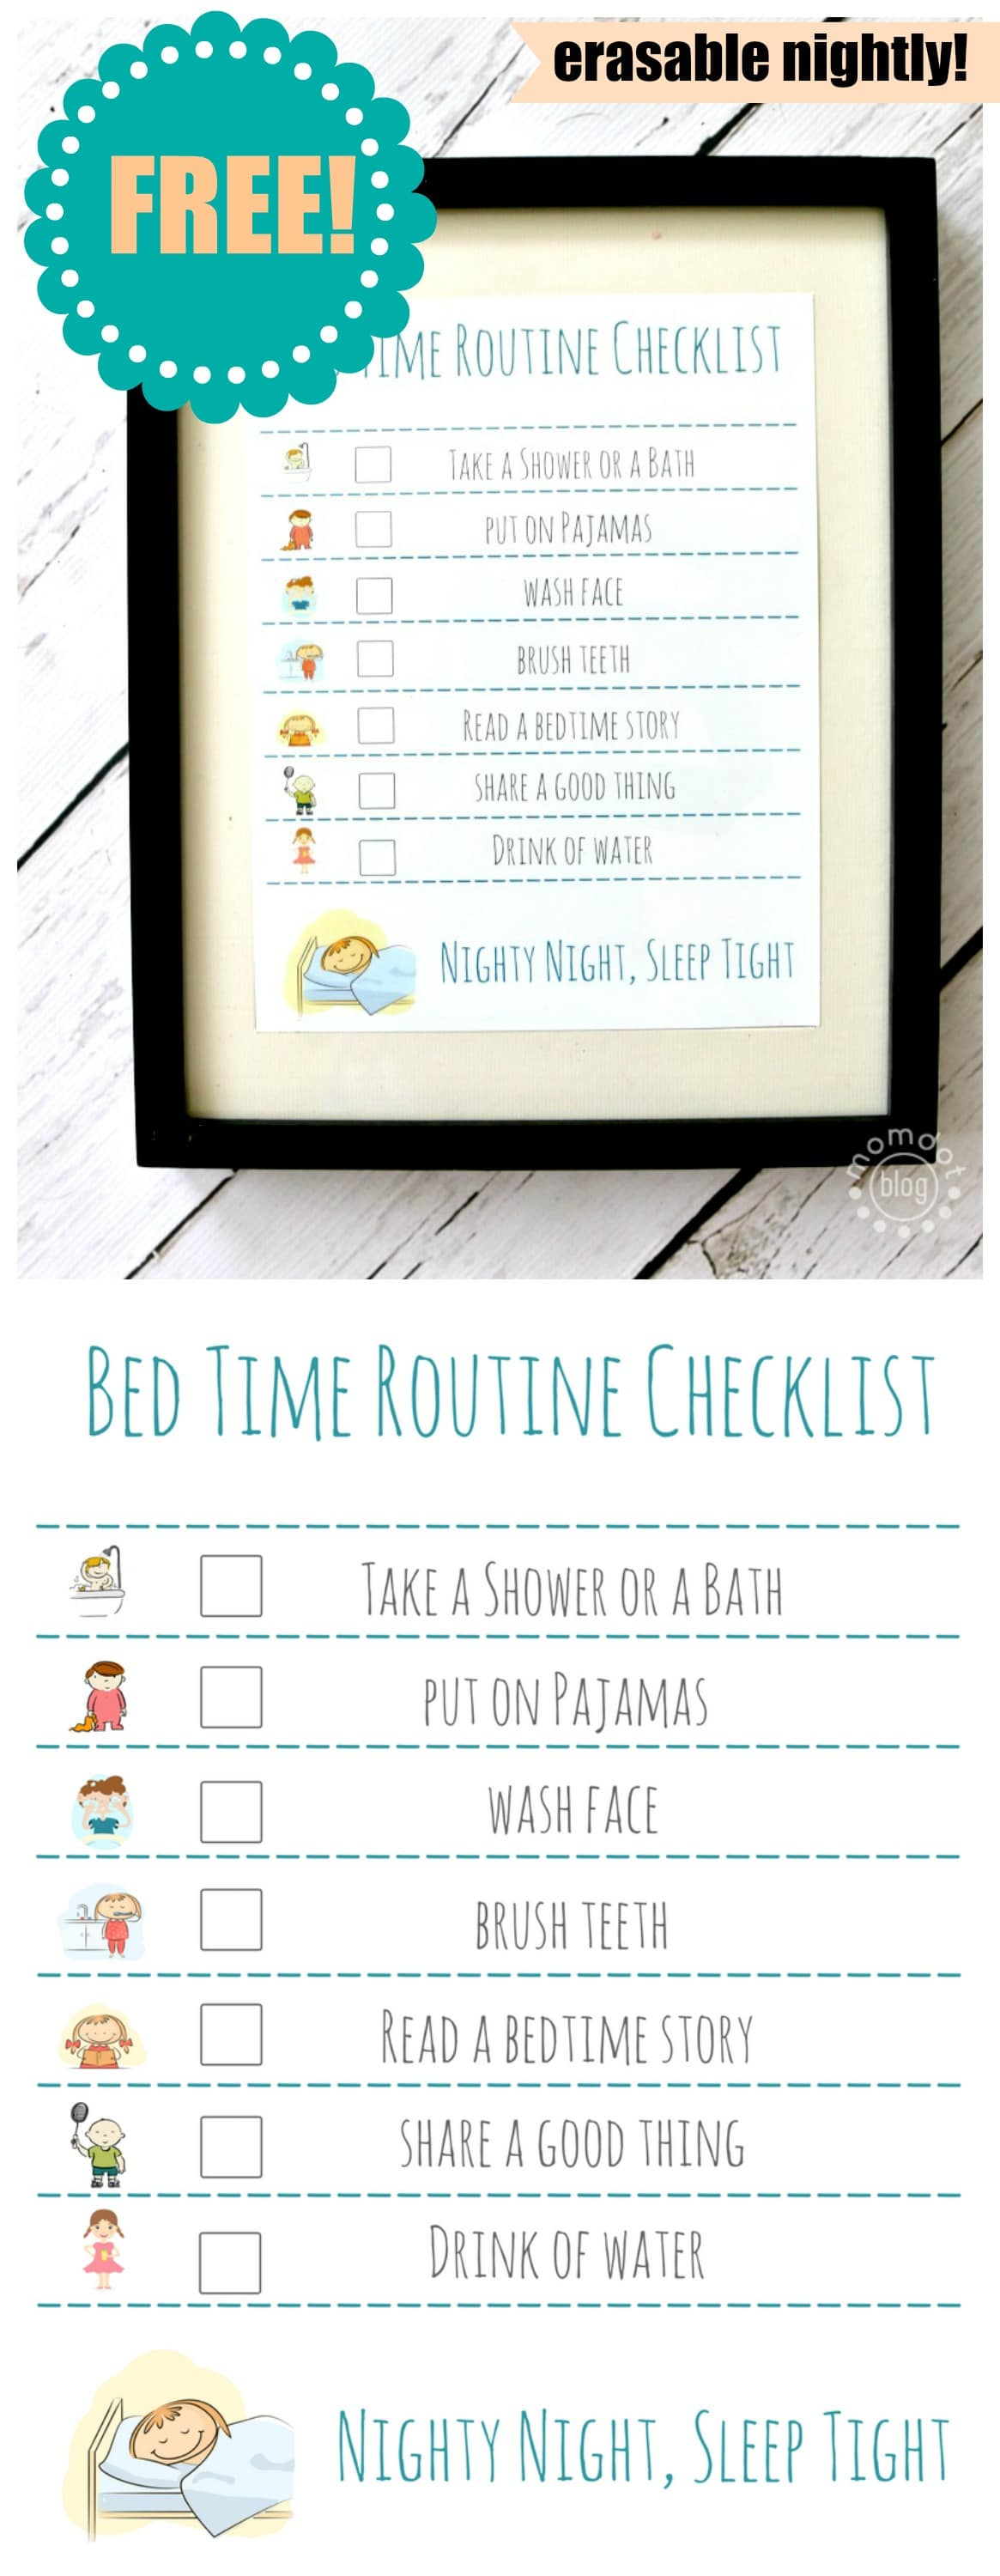 Bedtime Routine FREE Printable : Erase nightly to keep on task for Bed time, makes getting ready for bed EASY for parents and FUN for kids - simple print free printable and put in frame, dry erase marker makes it reusuable